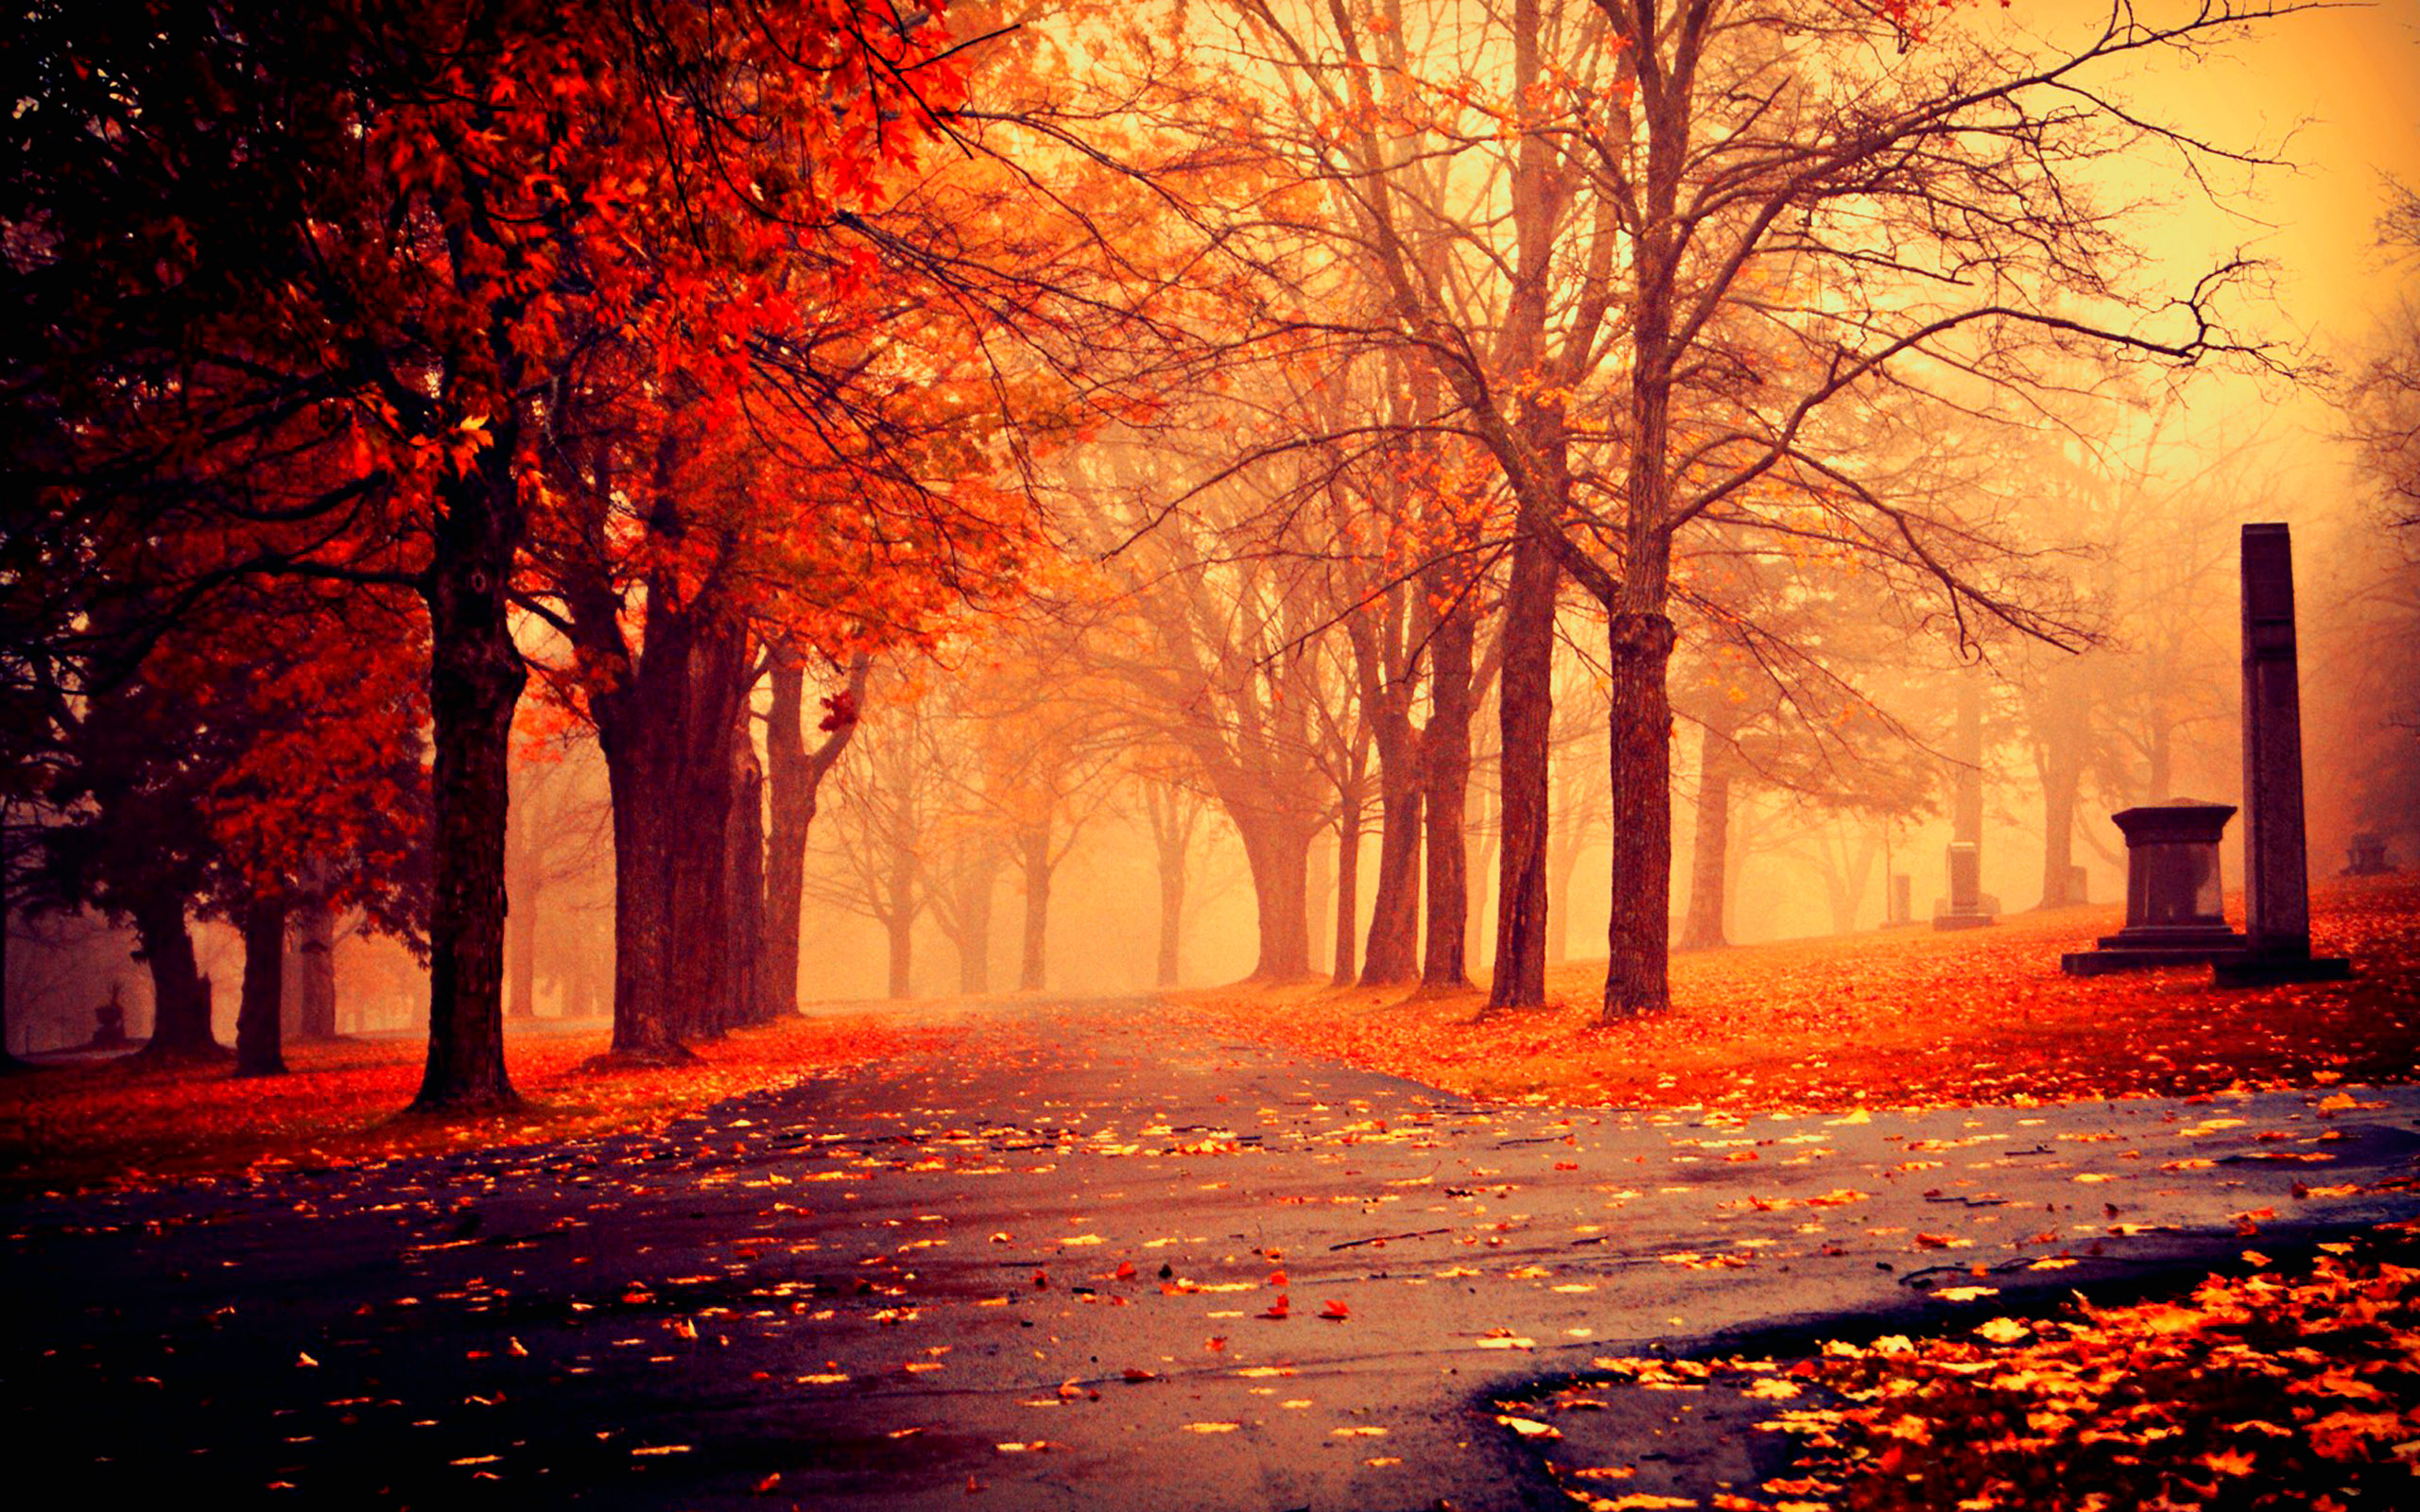 Autumn Nature Wallpapers HD Pictures One HD Wallpaper Pictures 2560x1600